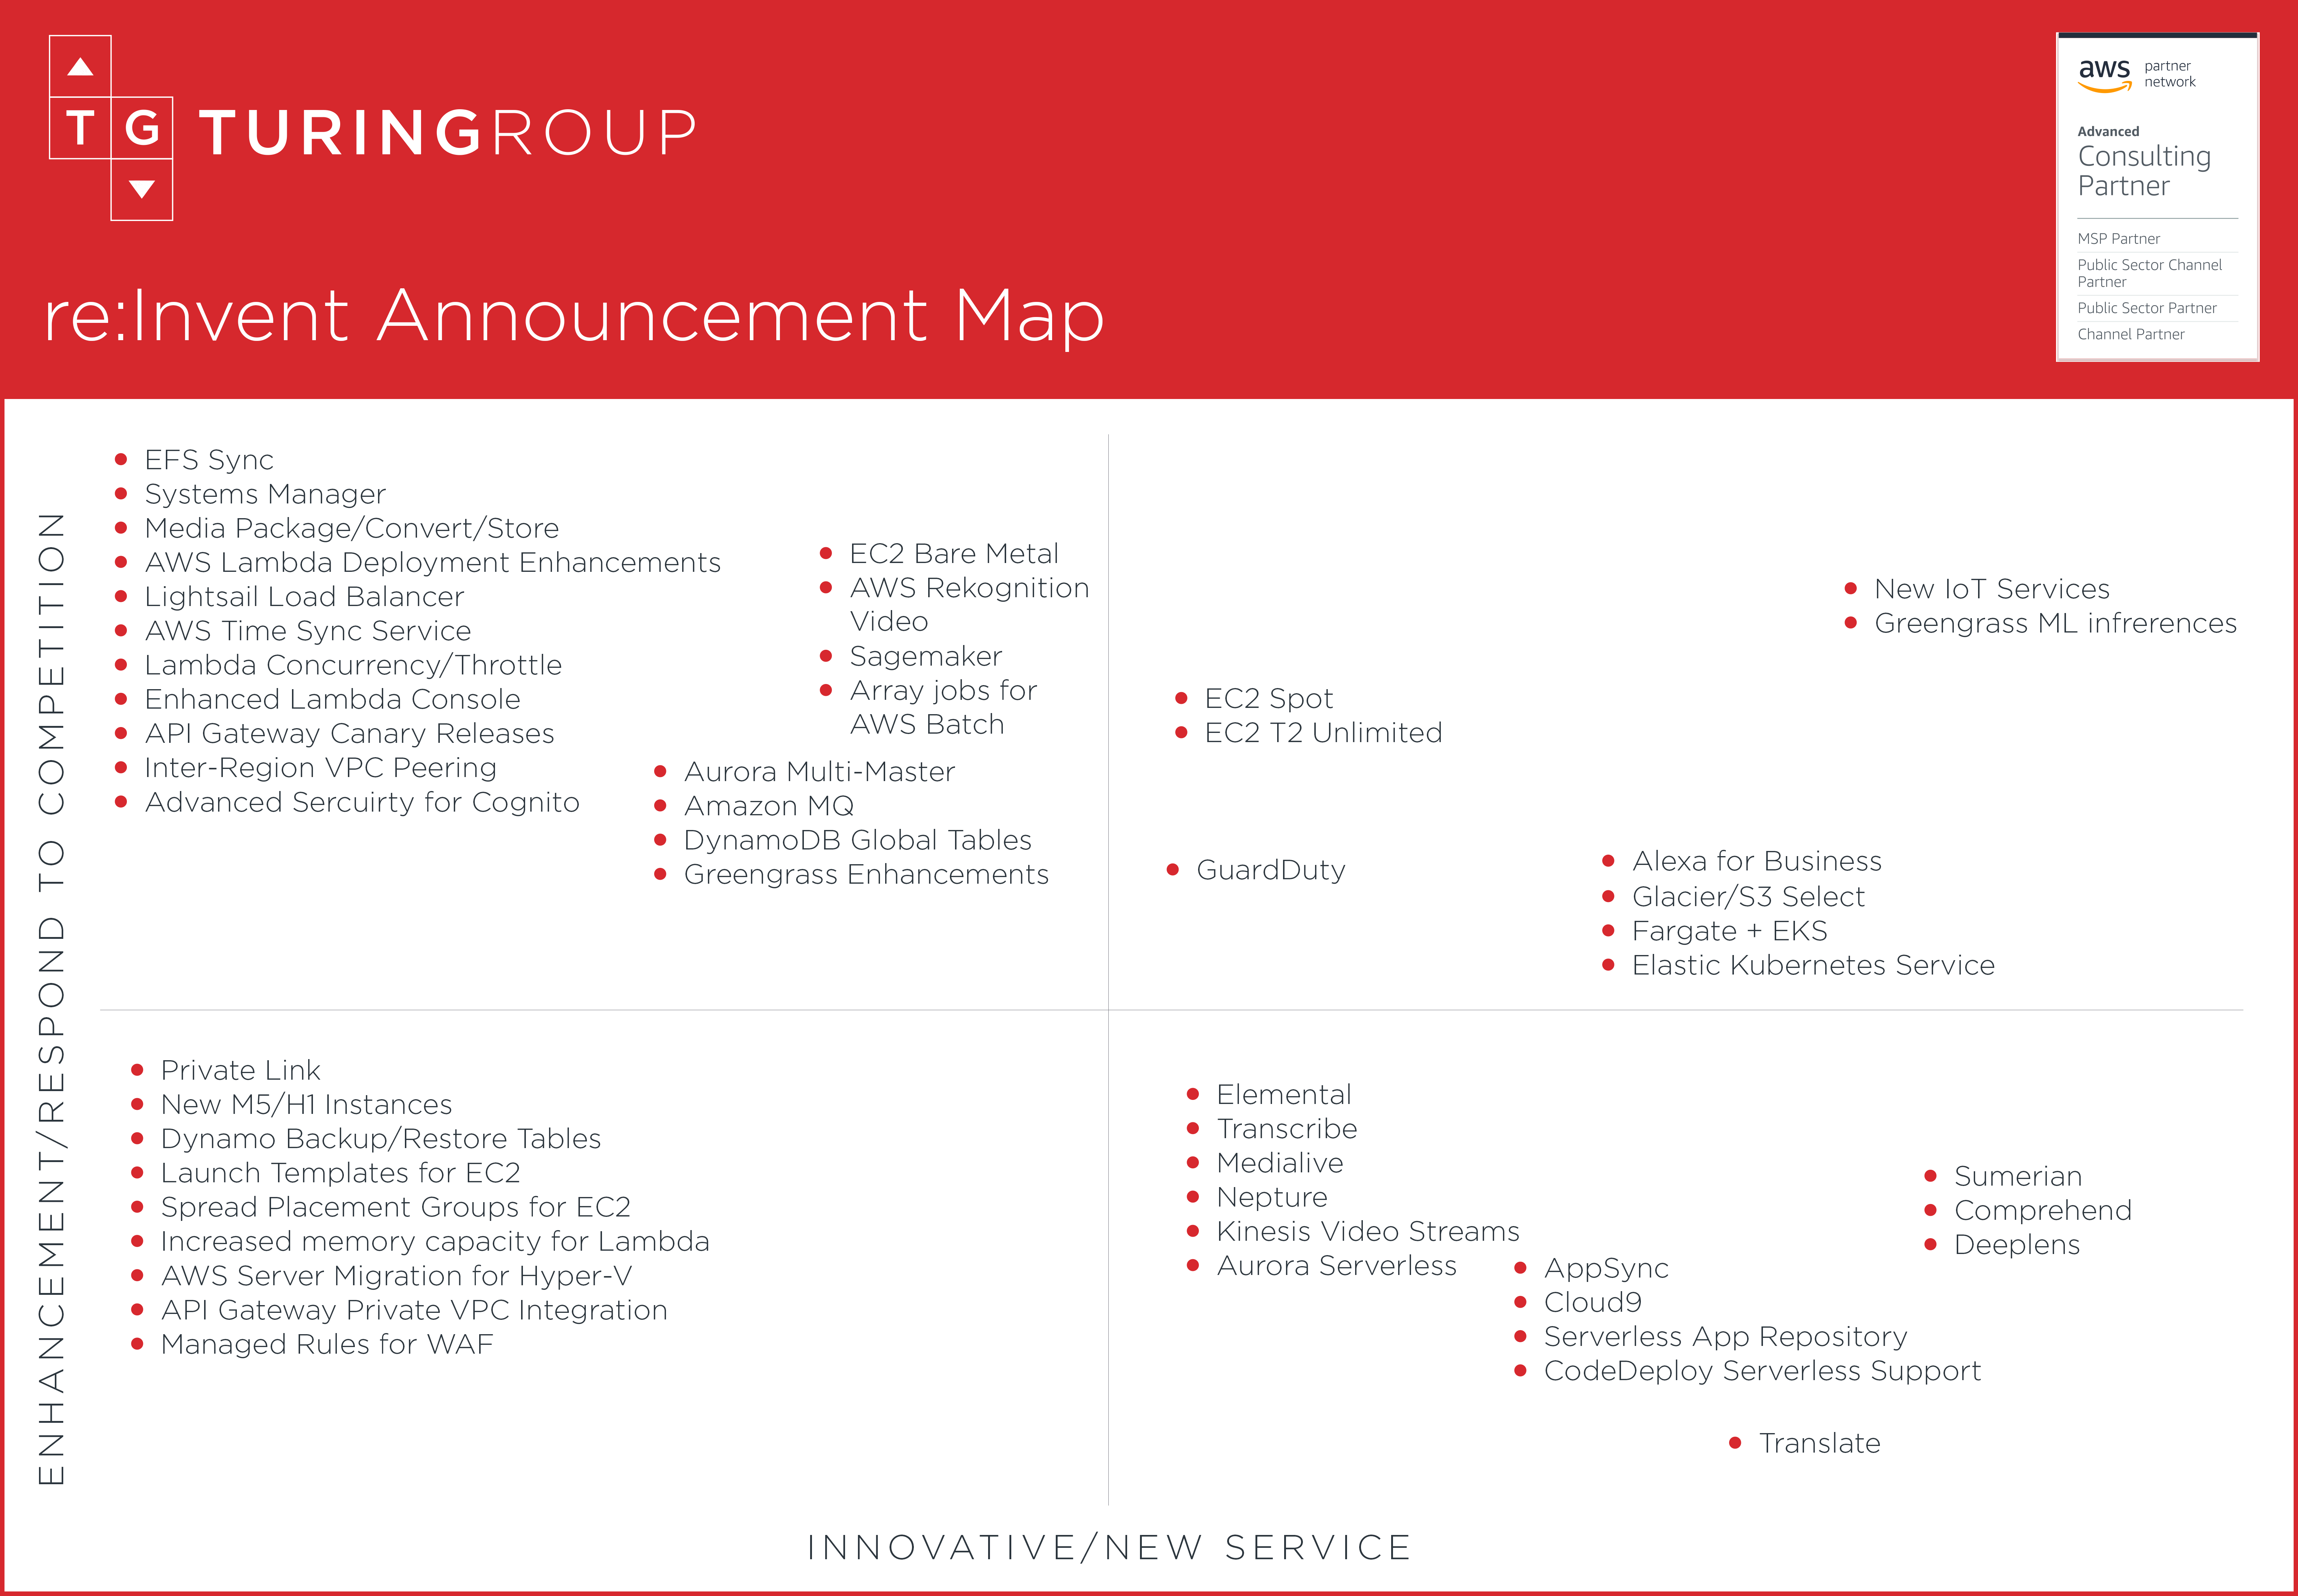 Turing Group AWS re:Invent 2017 Product Announcement Map